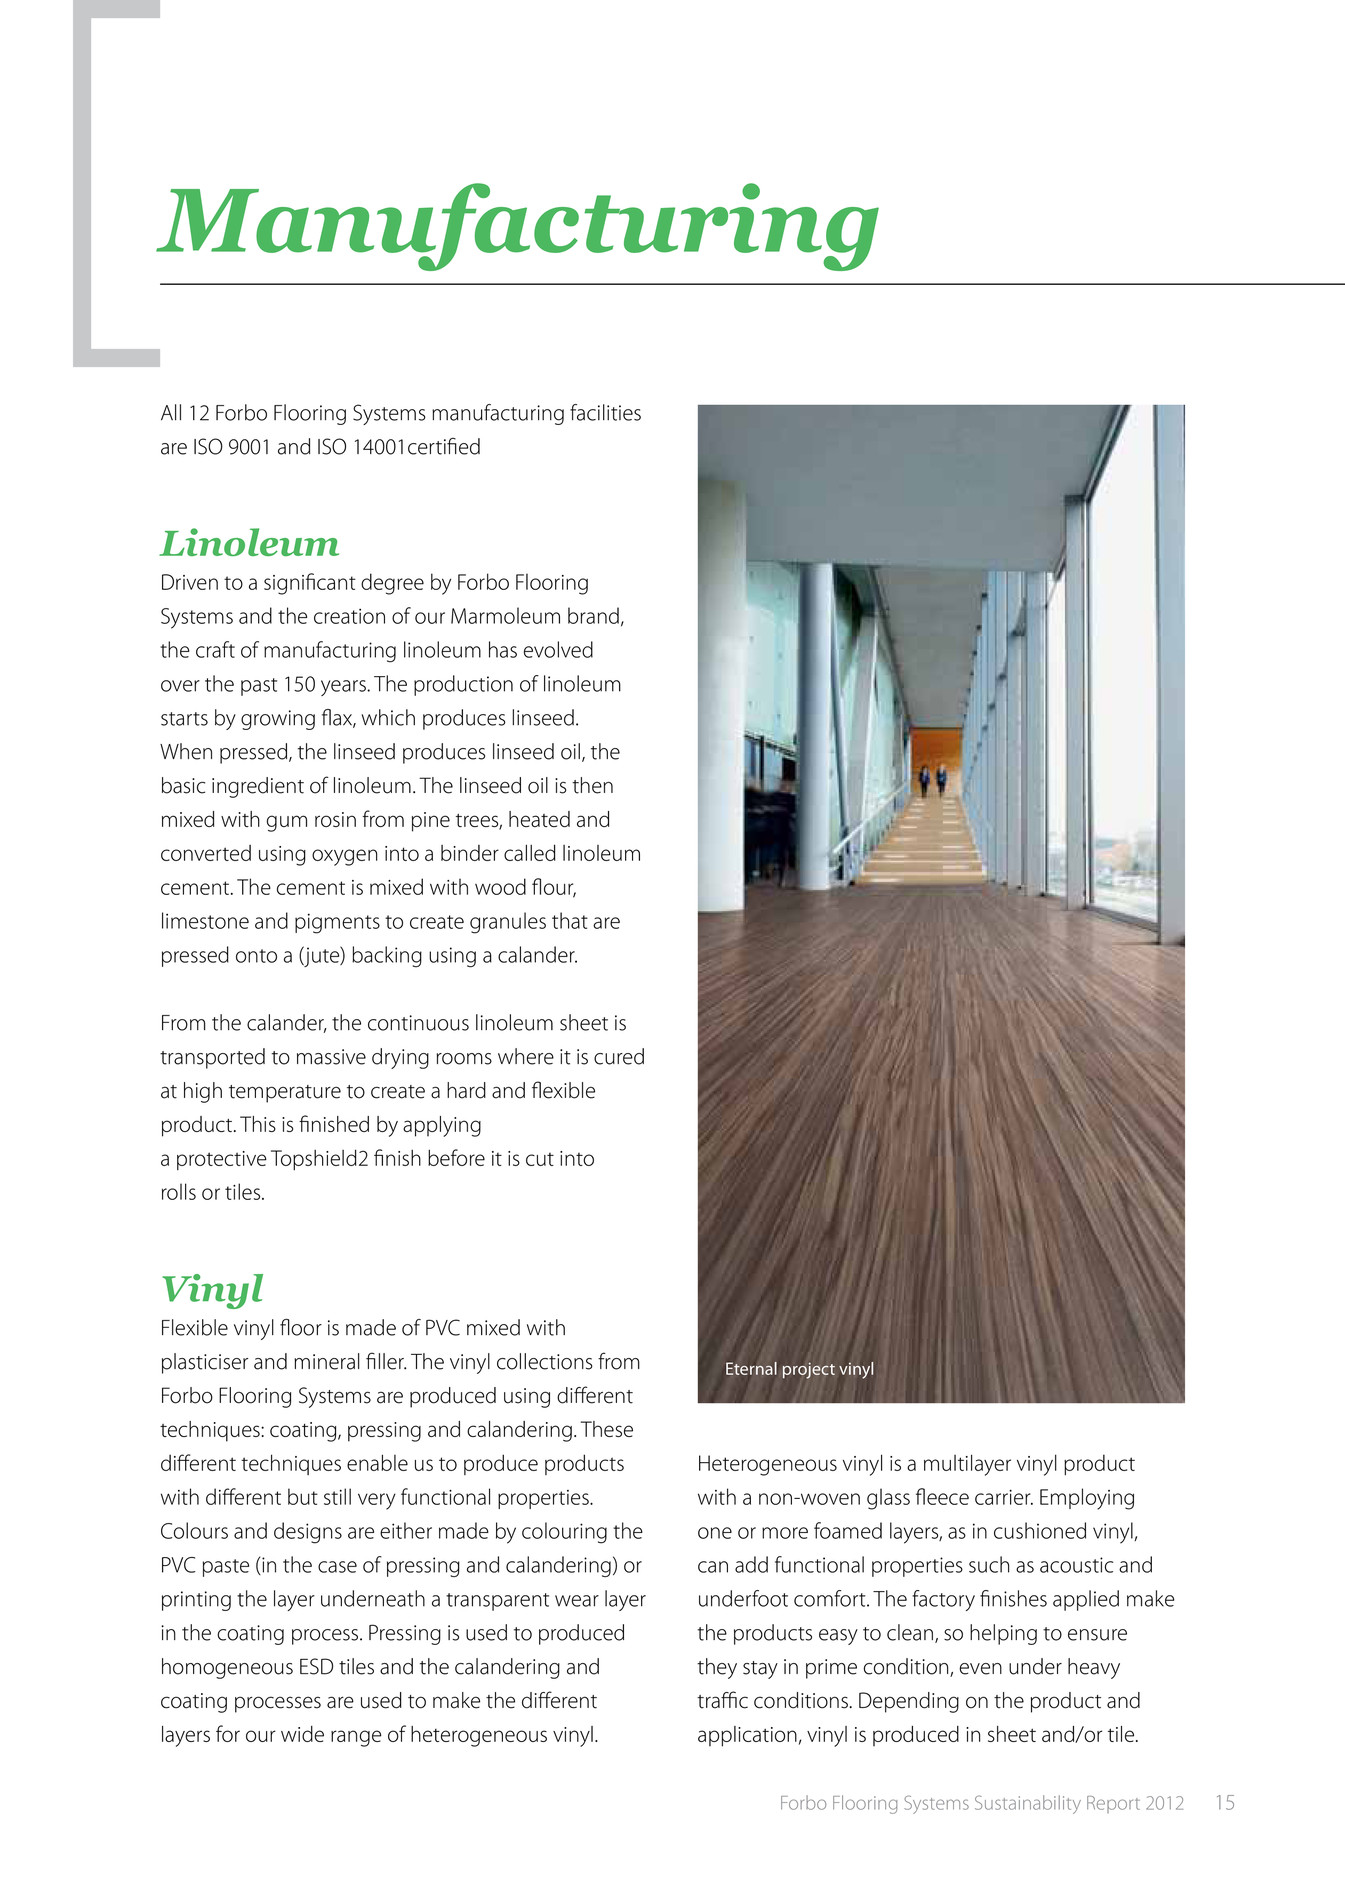 forboflooring se forbo flooring systems sustainability report 2012 page 14 15. Black Bedroom Furniture Sets. Home Design Ideas